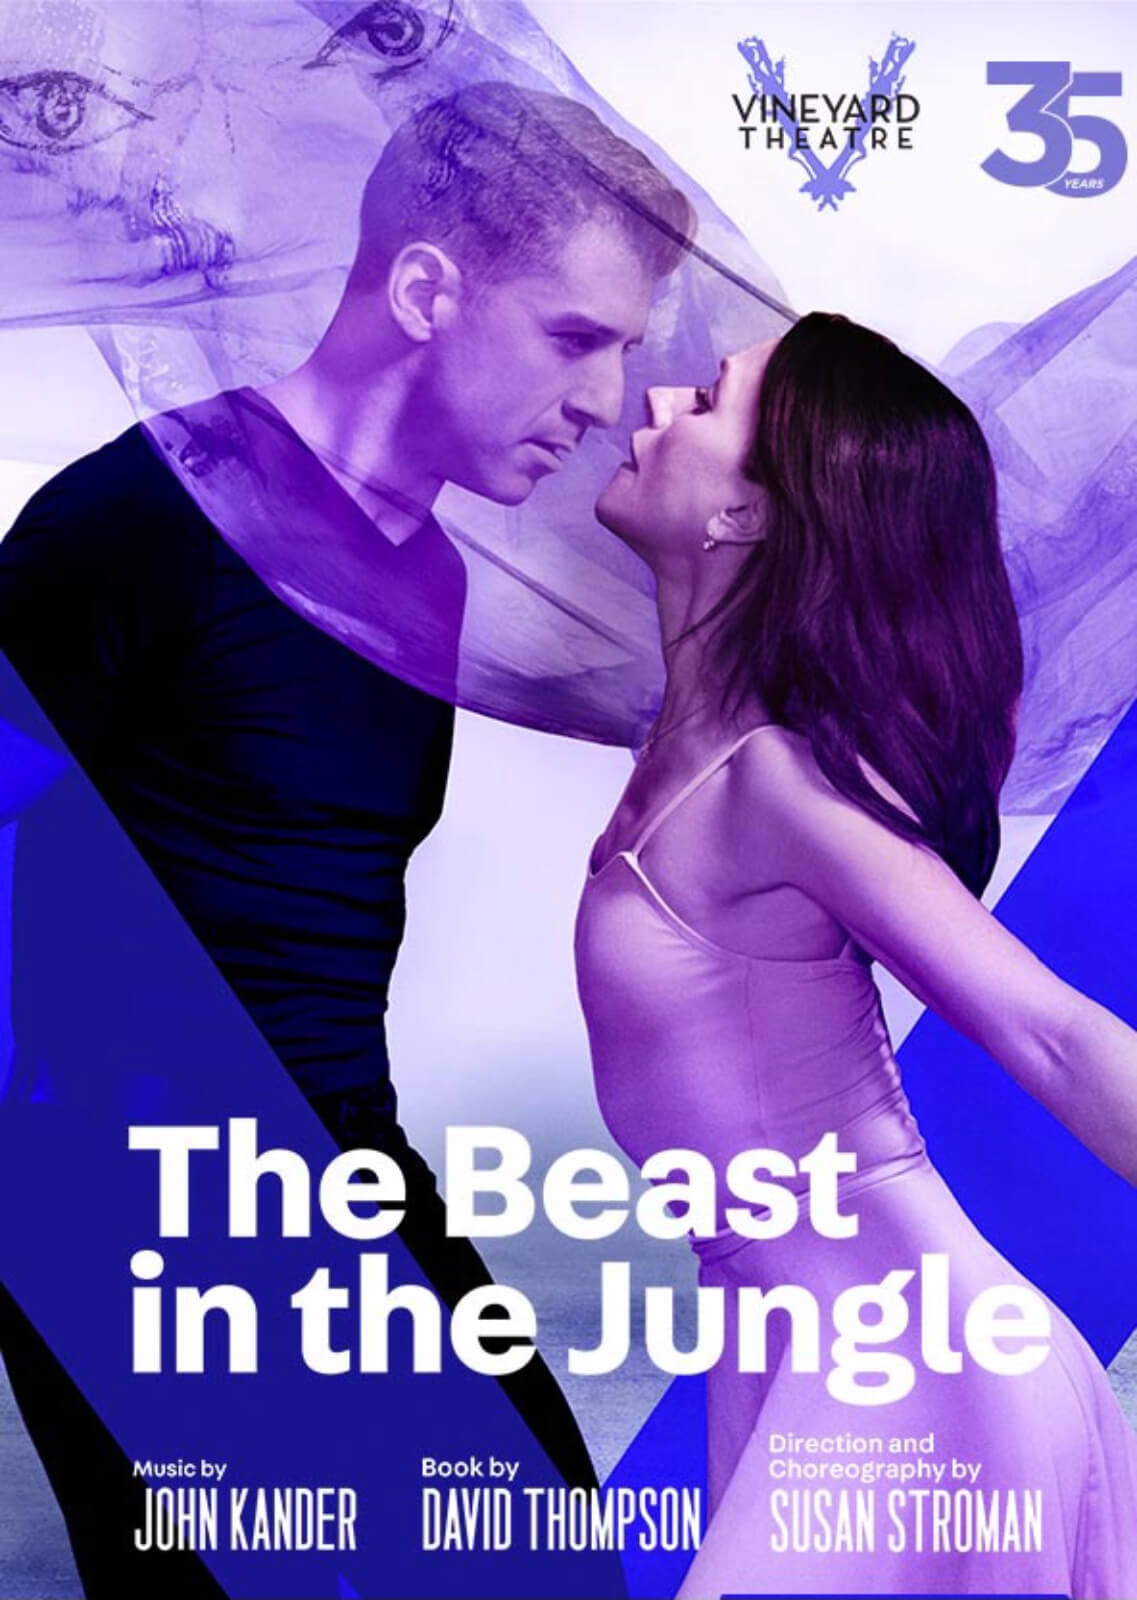 Poster for The Beast in the Jungle, featuring Tony Yazbeck and Irina Dvorovenko almost kissing inside silks.